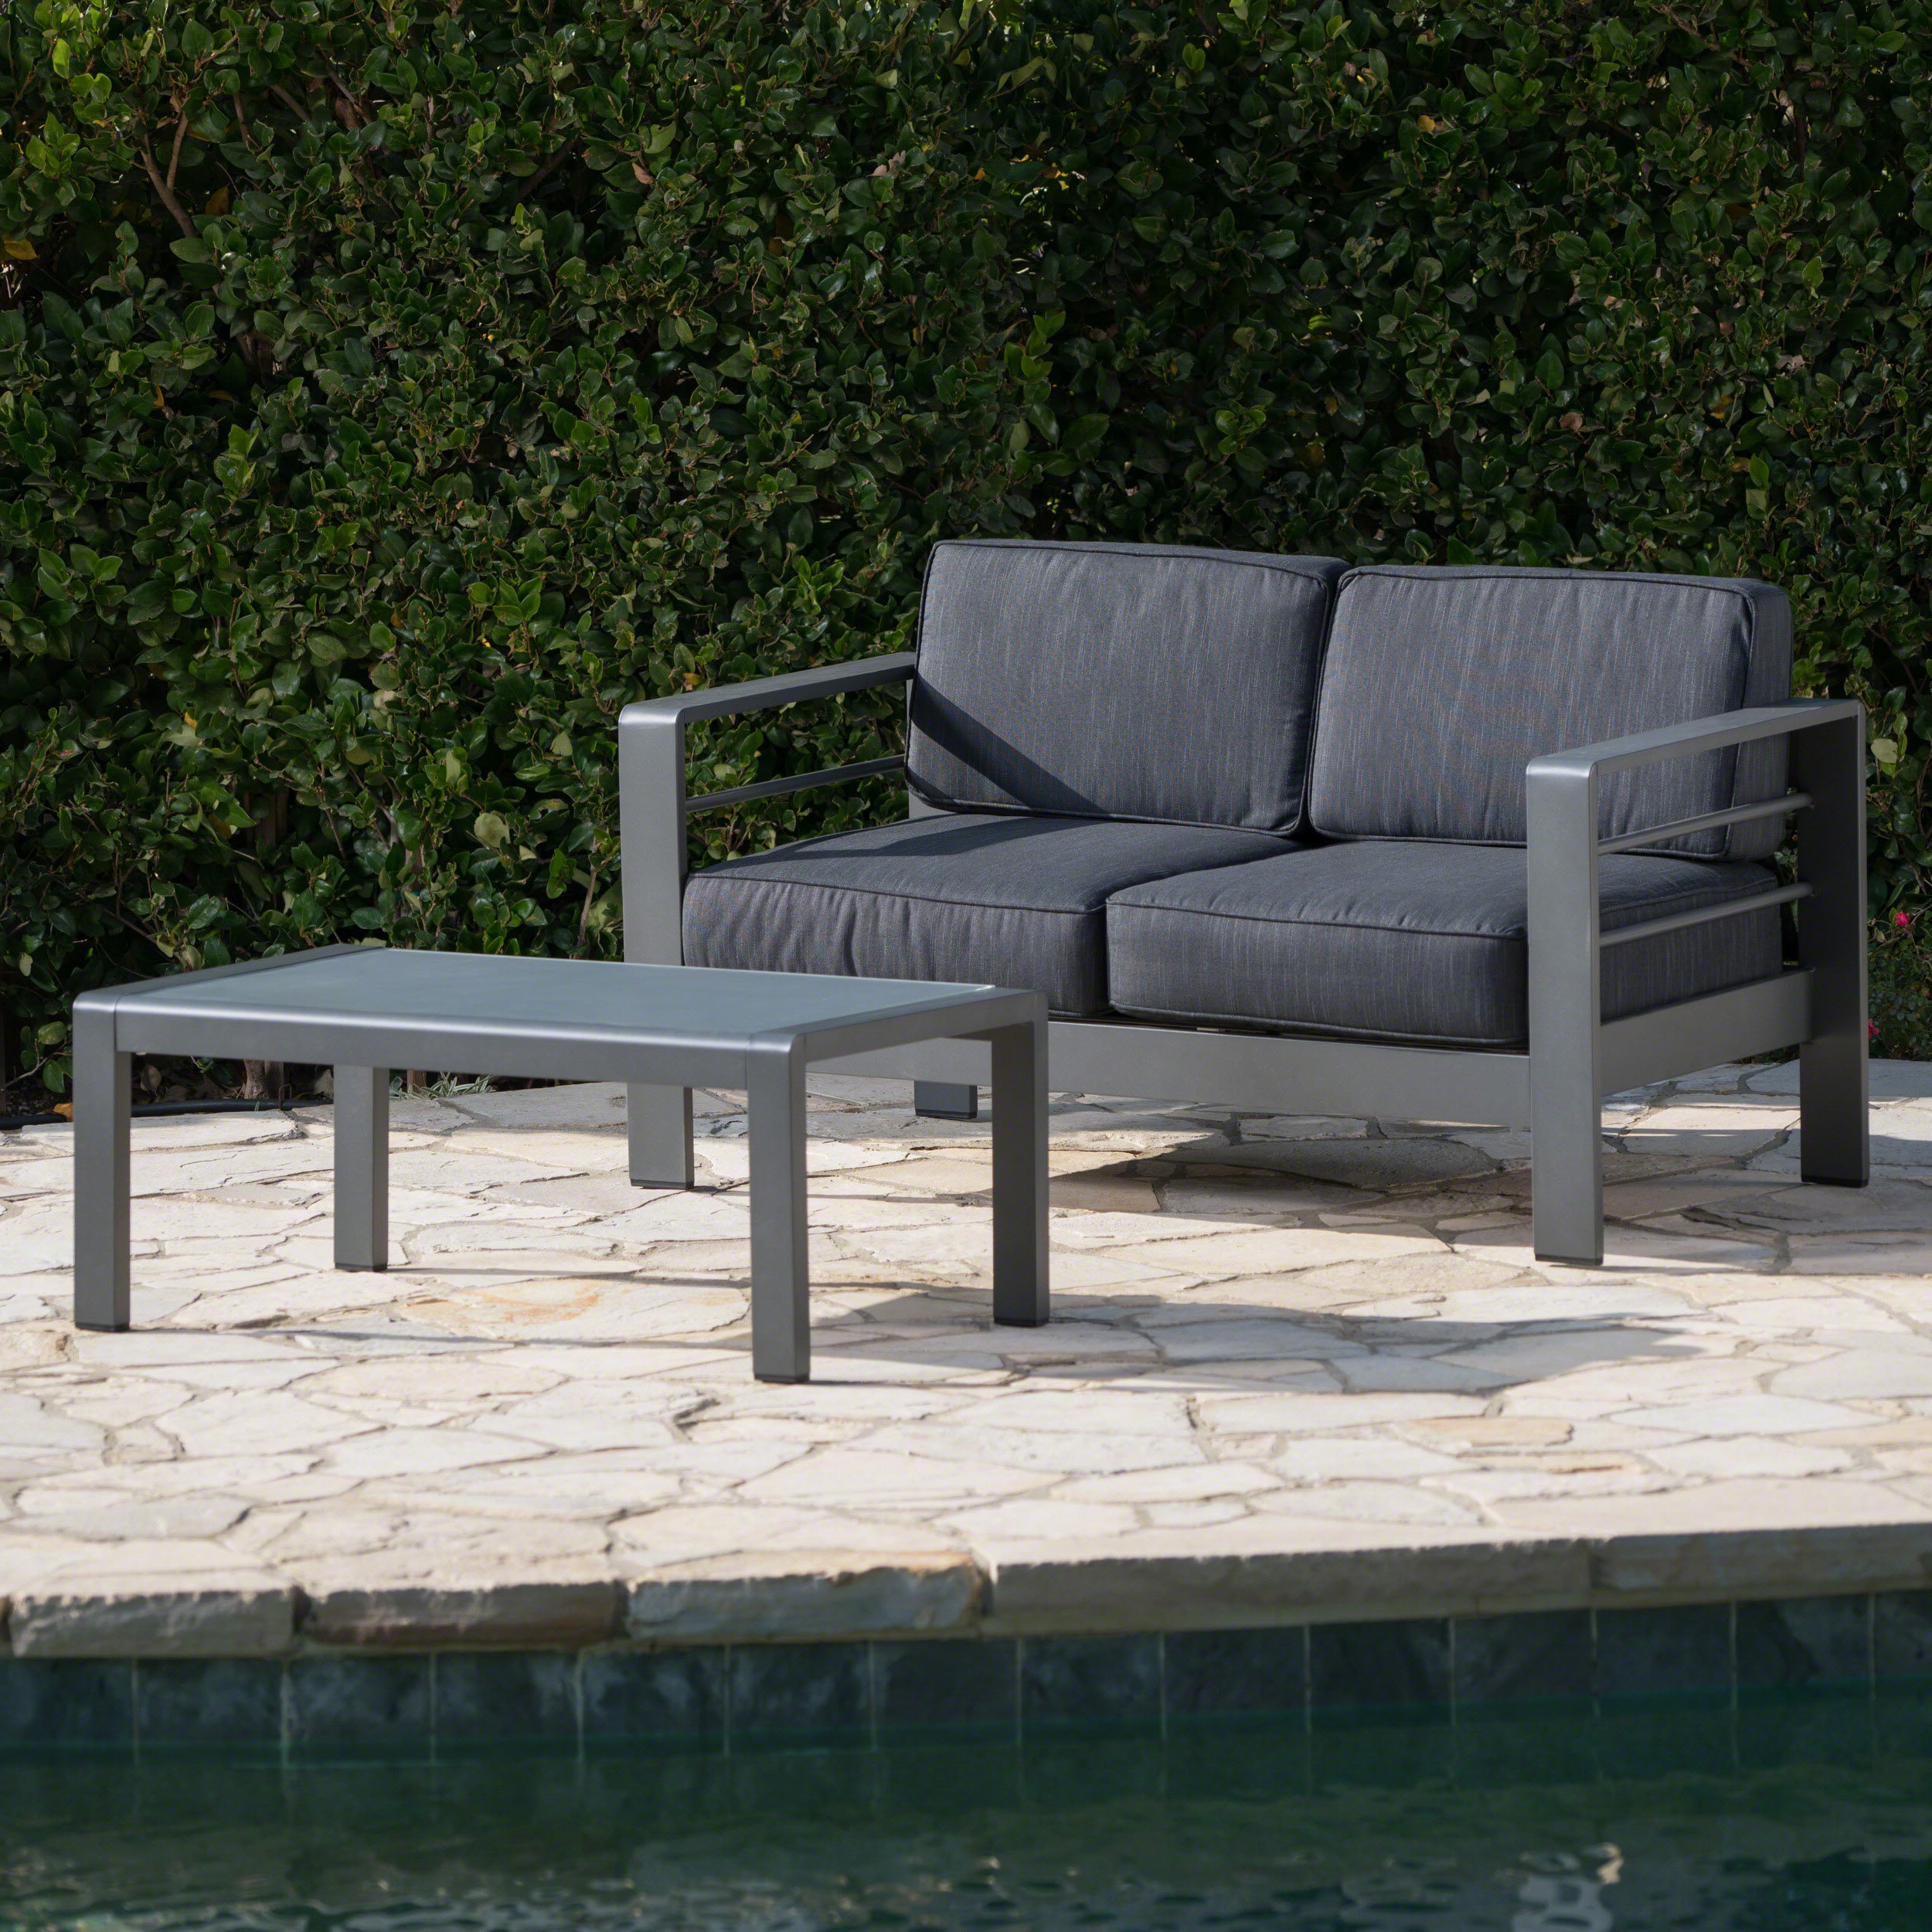 Famous Royalston Patio Sofas With Cushions For Royalston 2 Piece Sofa Set With Cushions (View 6 of 20)